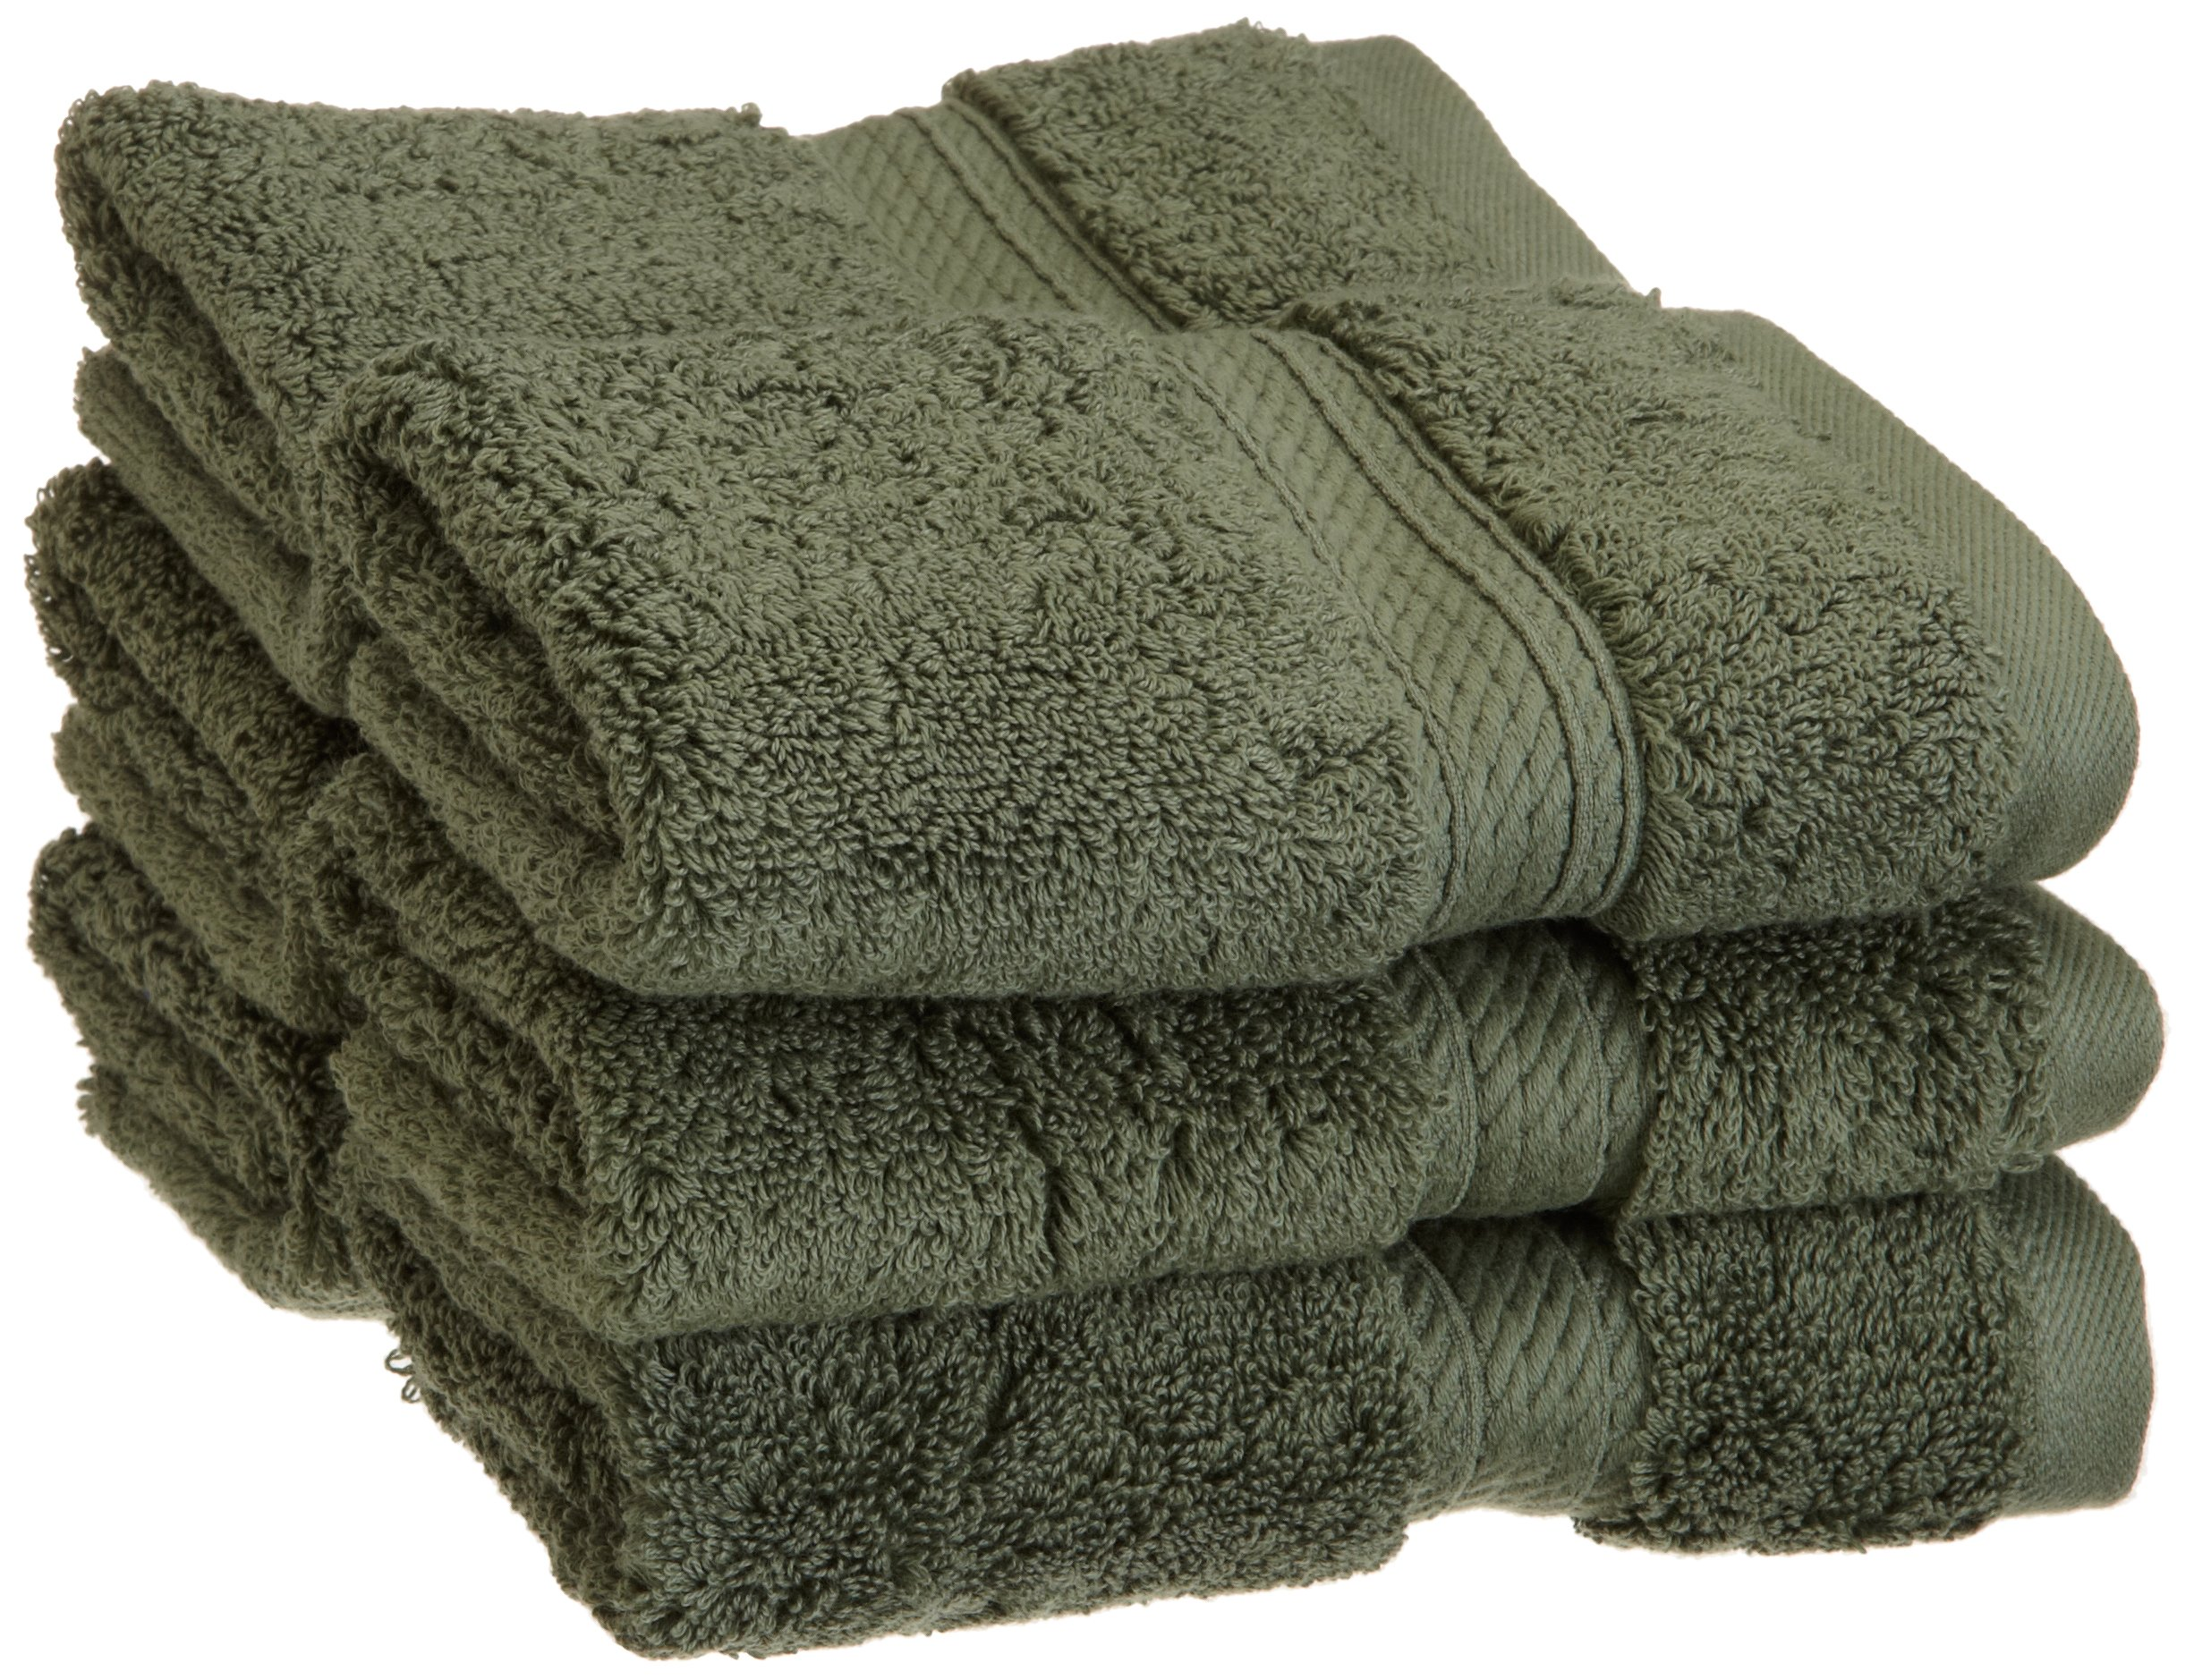 Superior 900 GSM Luxury Bathroom Face Towels, Made of 100% Premium Long-Staple Combed Cotton, Set of 6 Hotel & Spa Quality Washcloths - Forest Green, 13'' x 13'' each